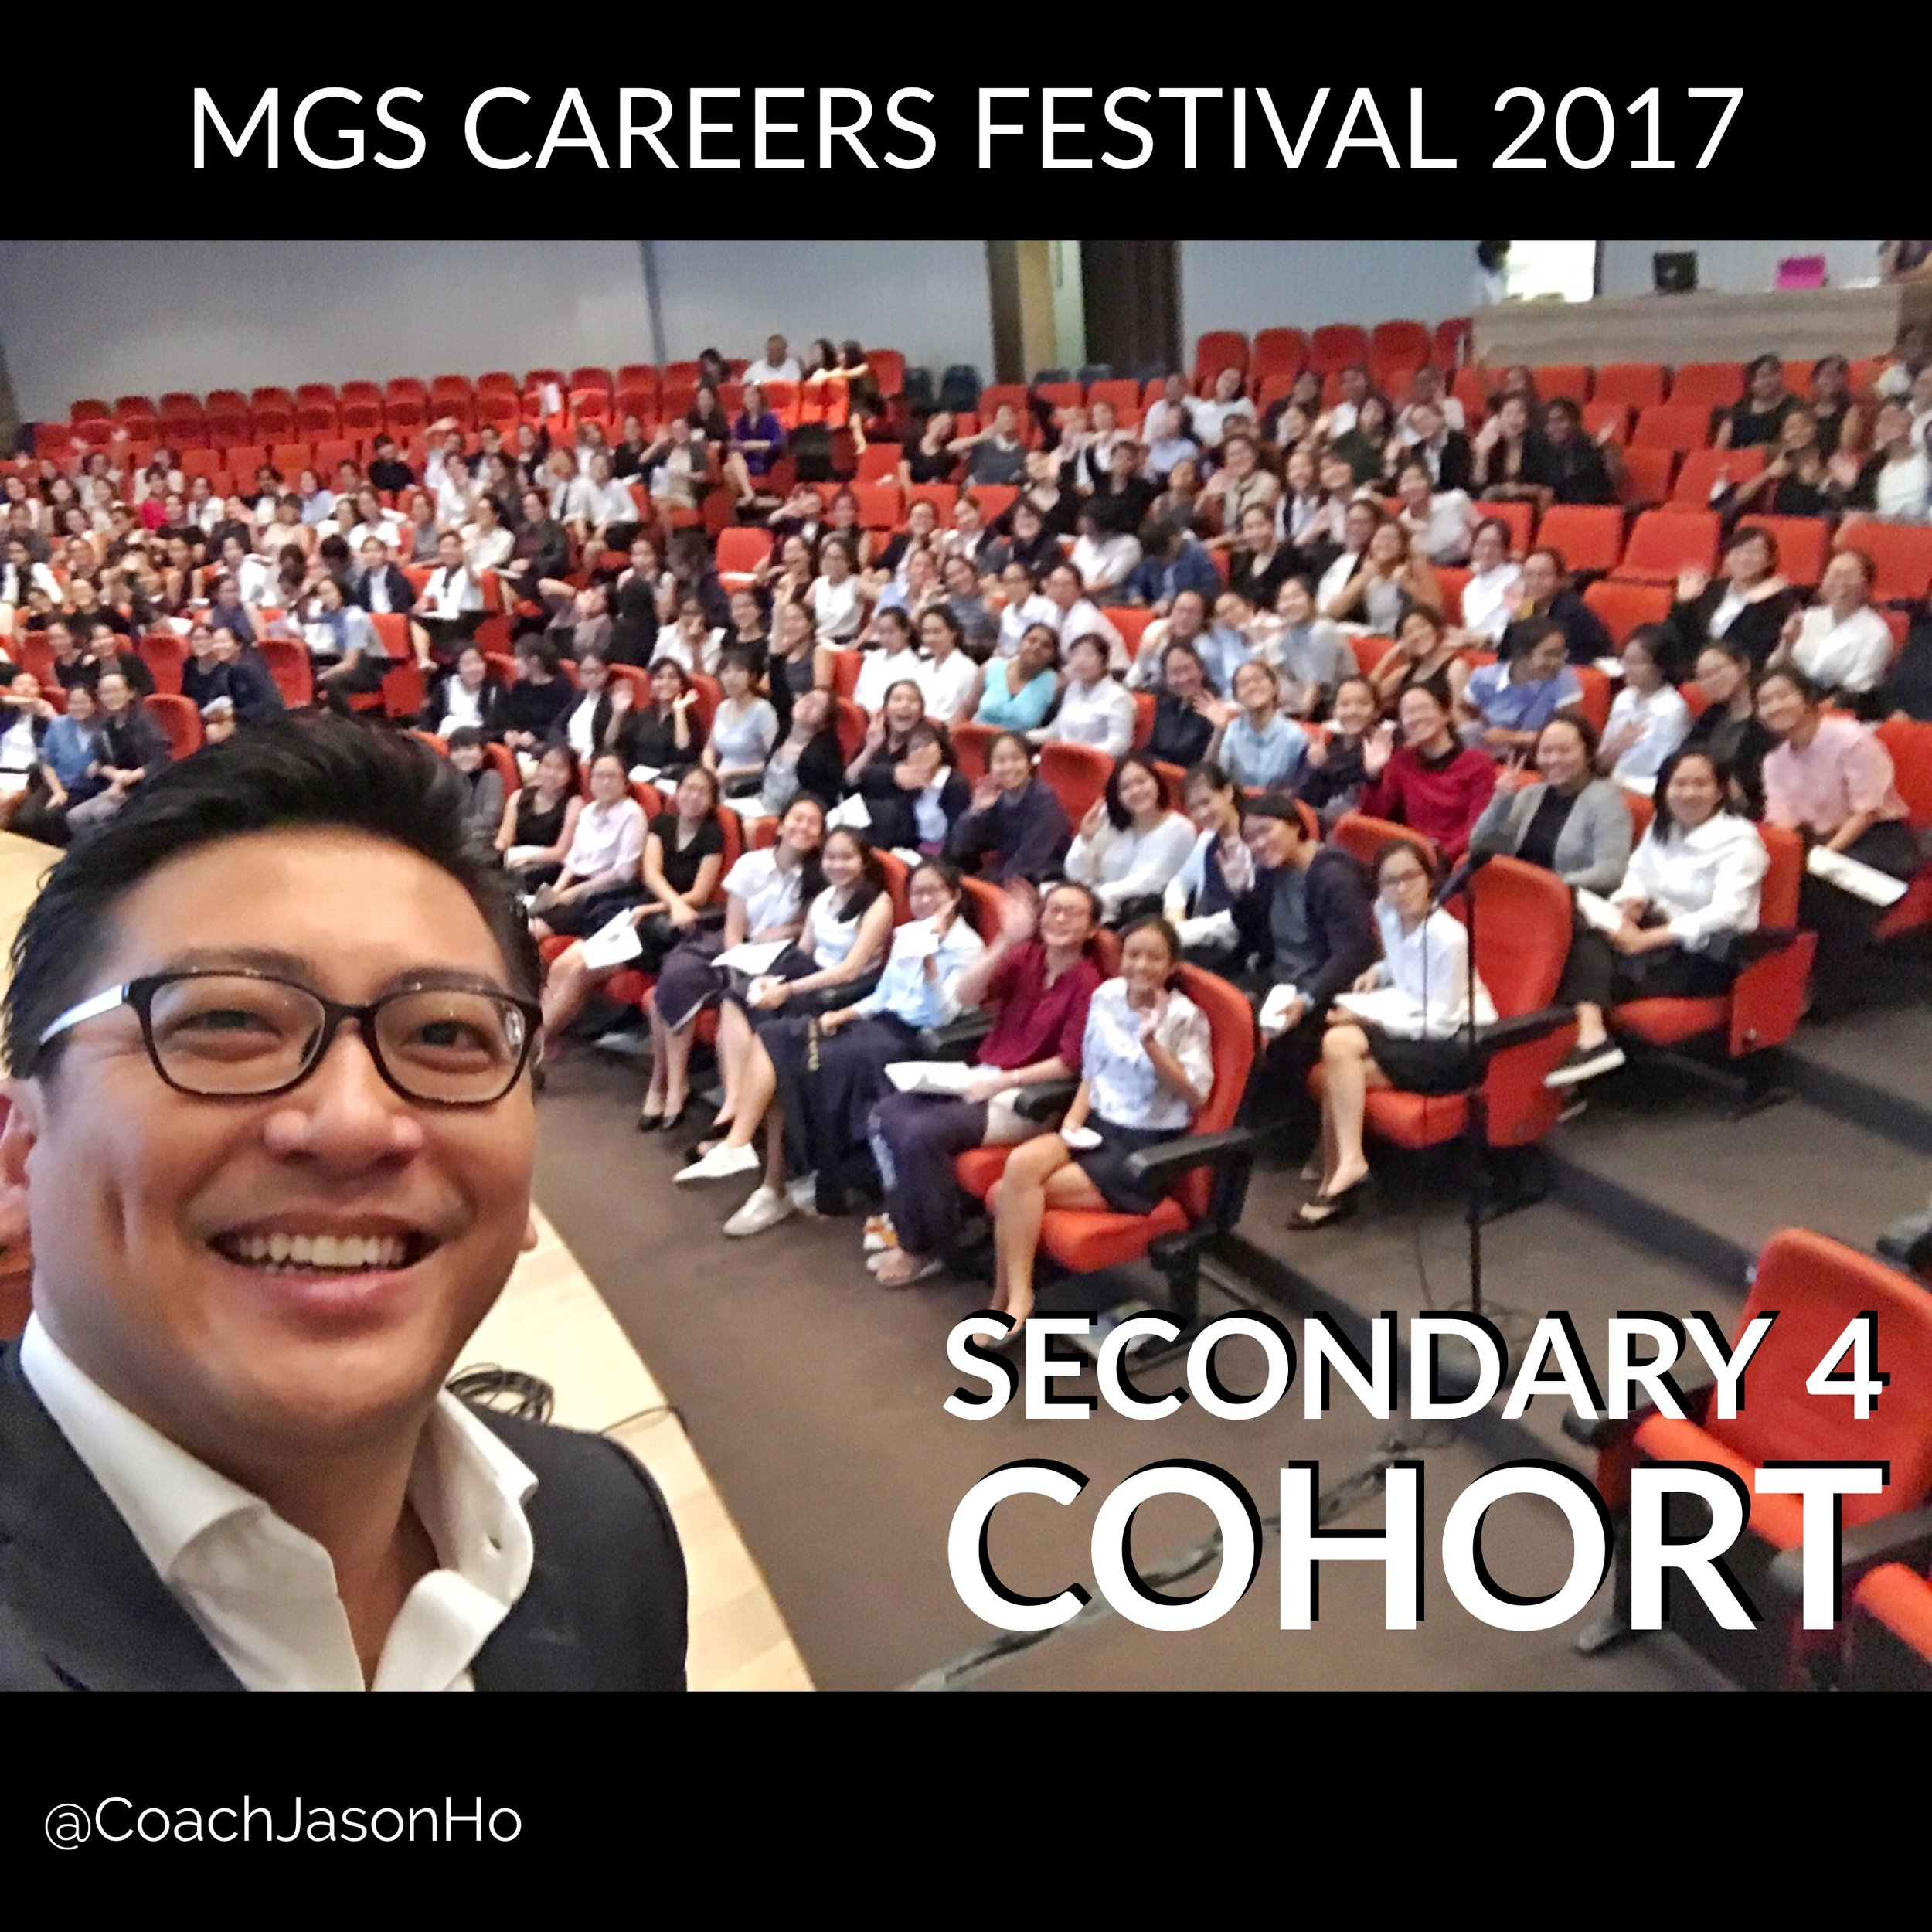 Invited as a keynote speaker for MGS Careers Festival 2017 #StrengthsFinder